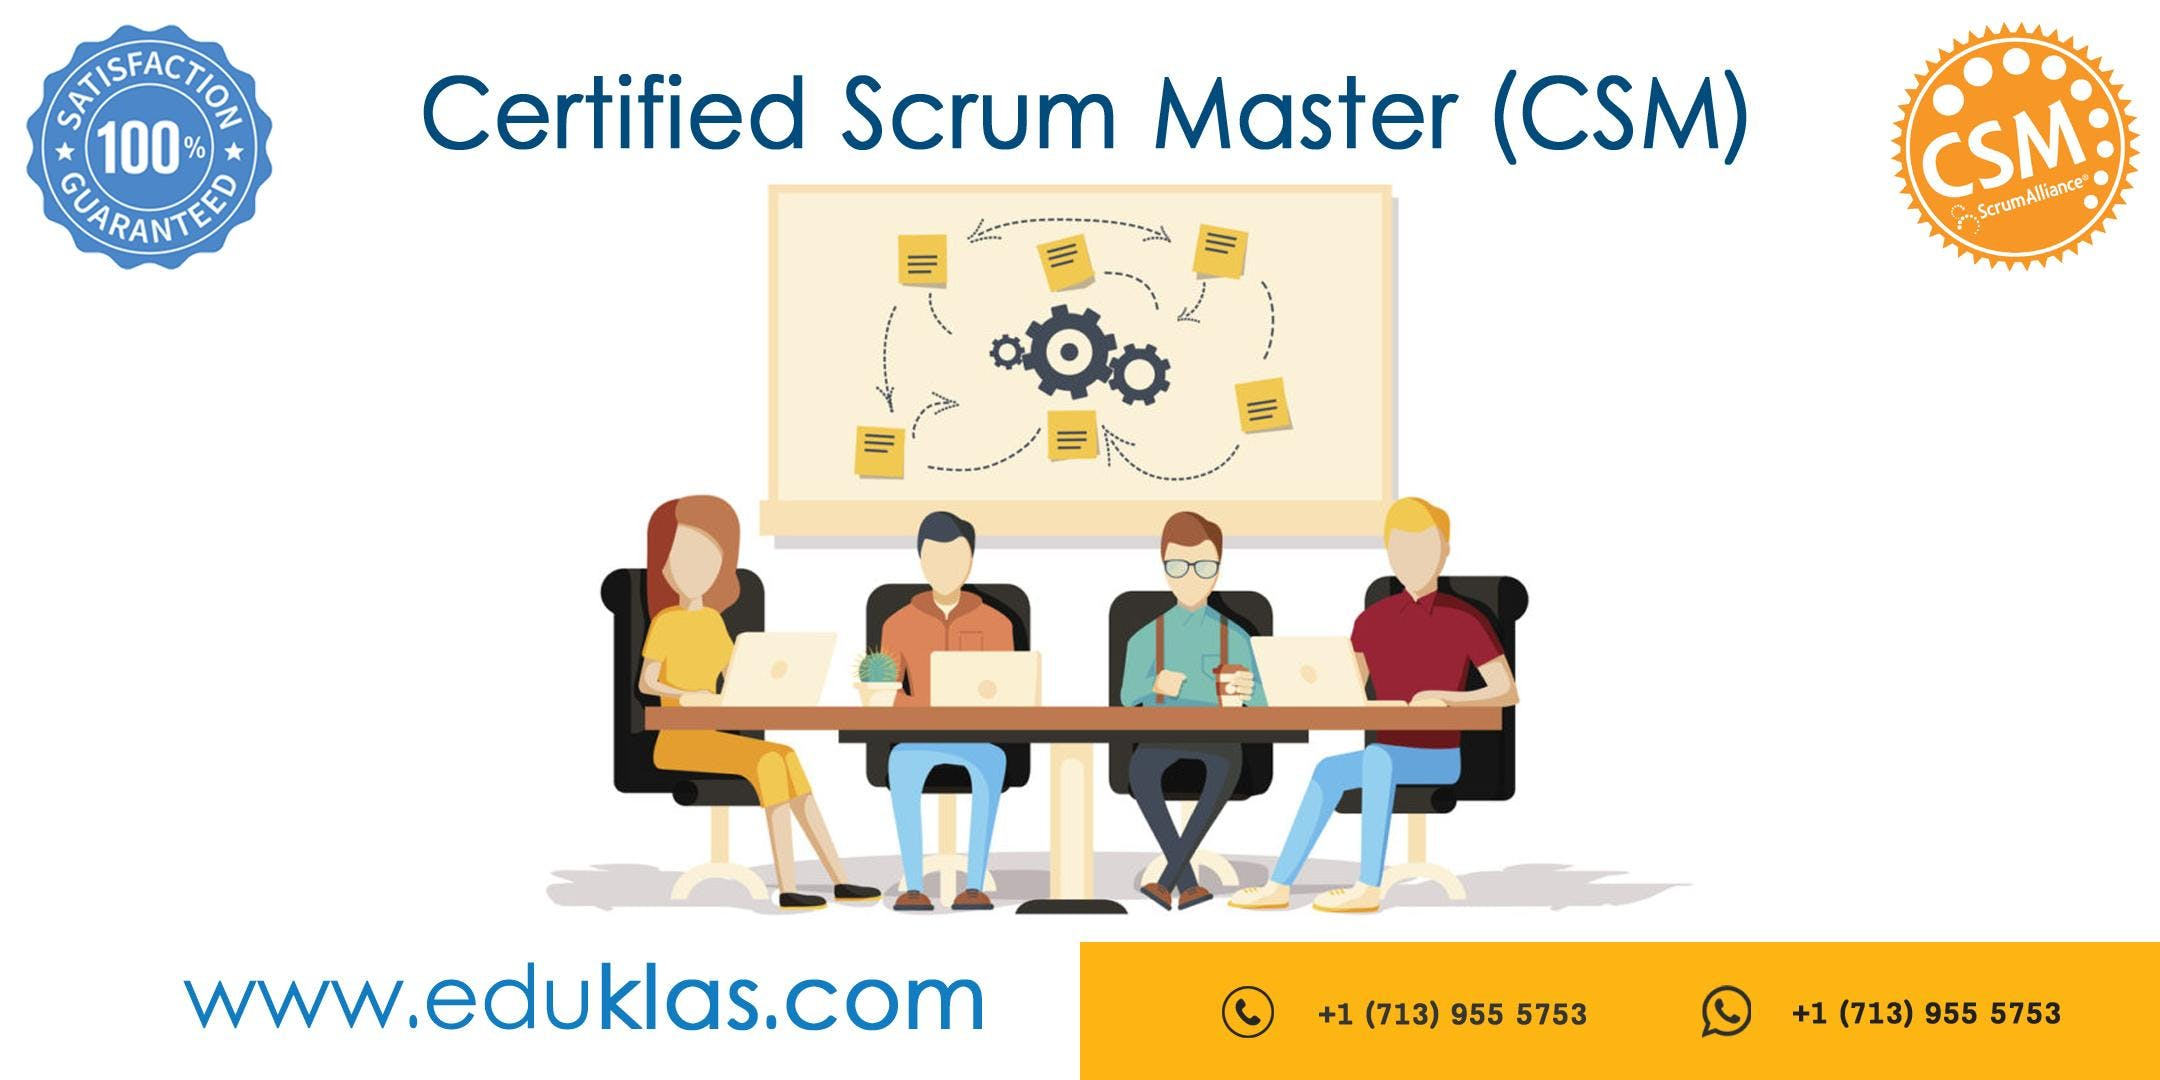 Scrum Master Certification | CSM Training | CSM Certification Workshop | Certified Scrum Master (CSM) Training in Peoria, AZ | Eduklas